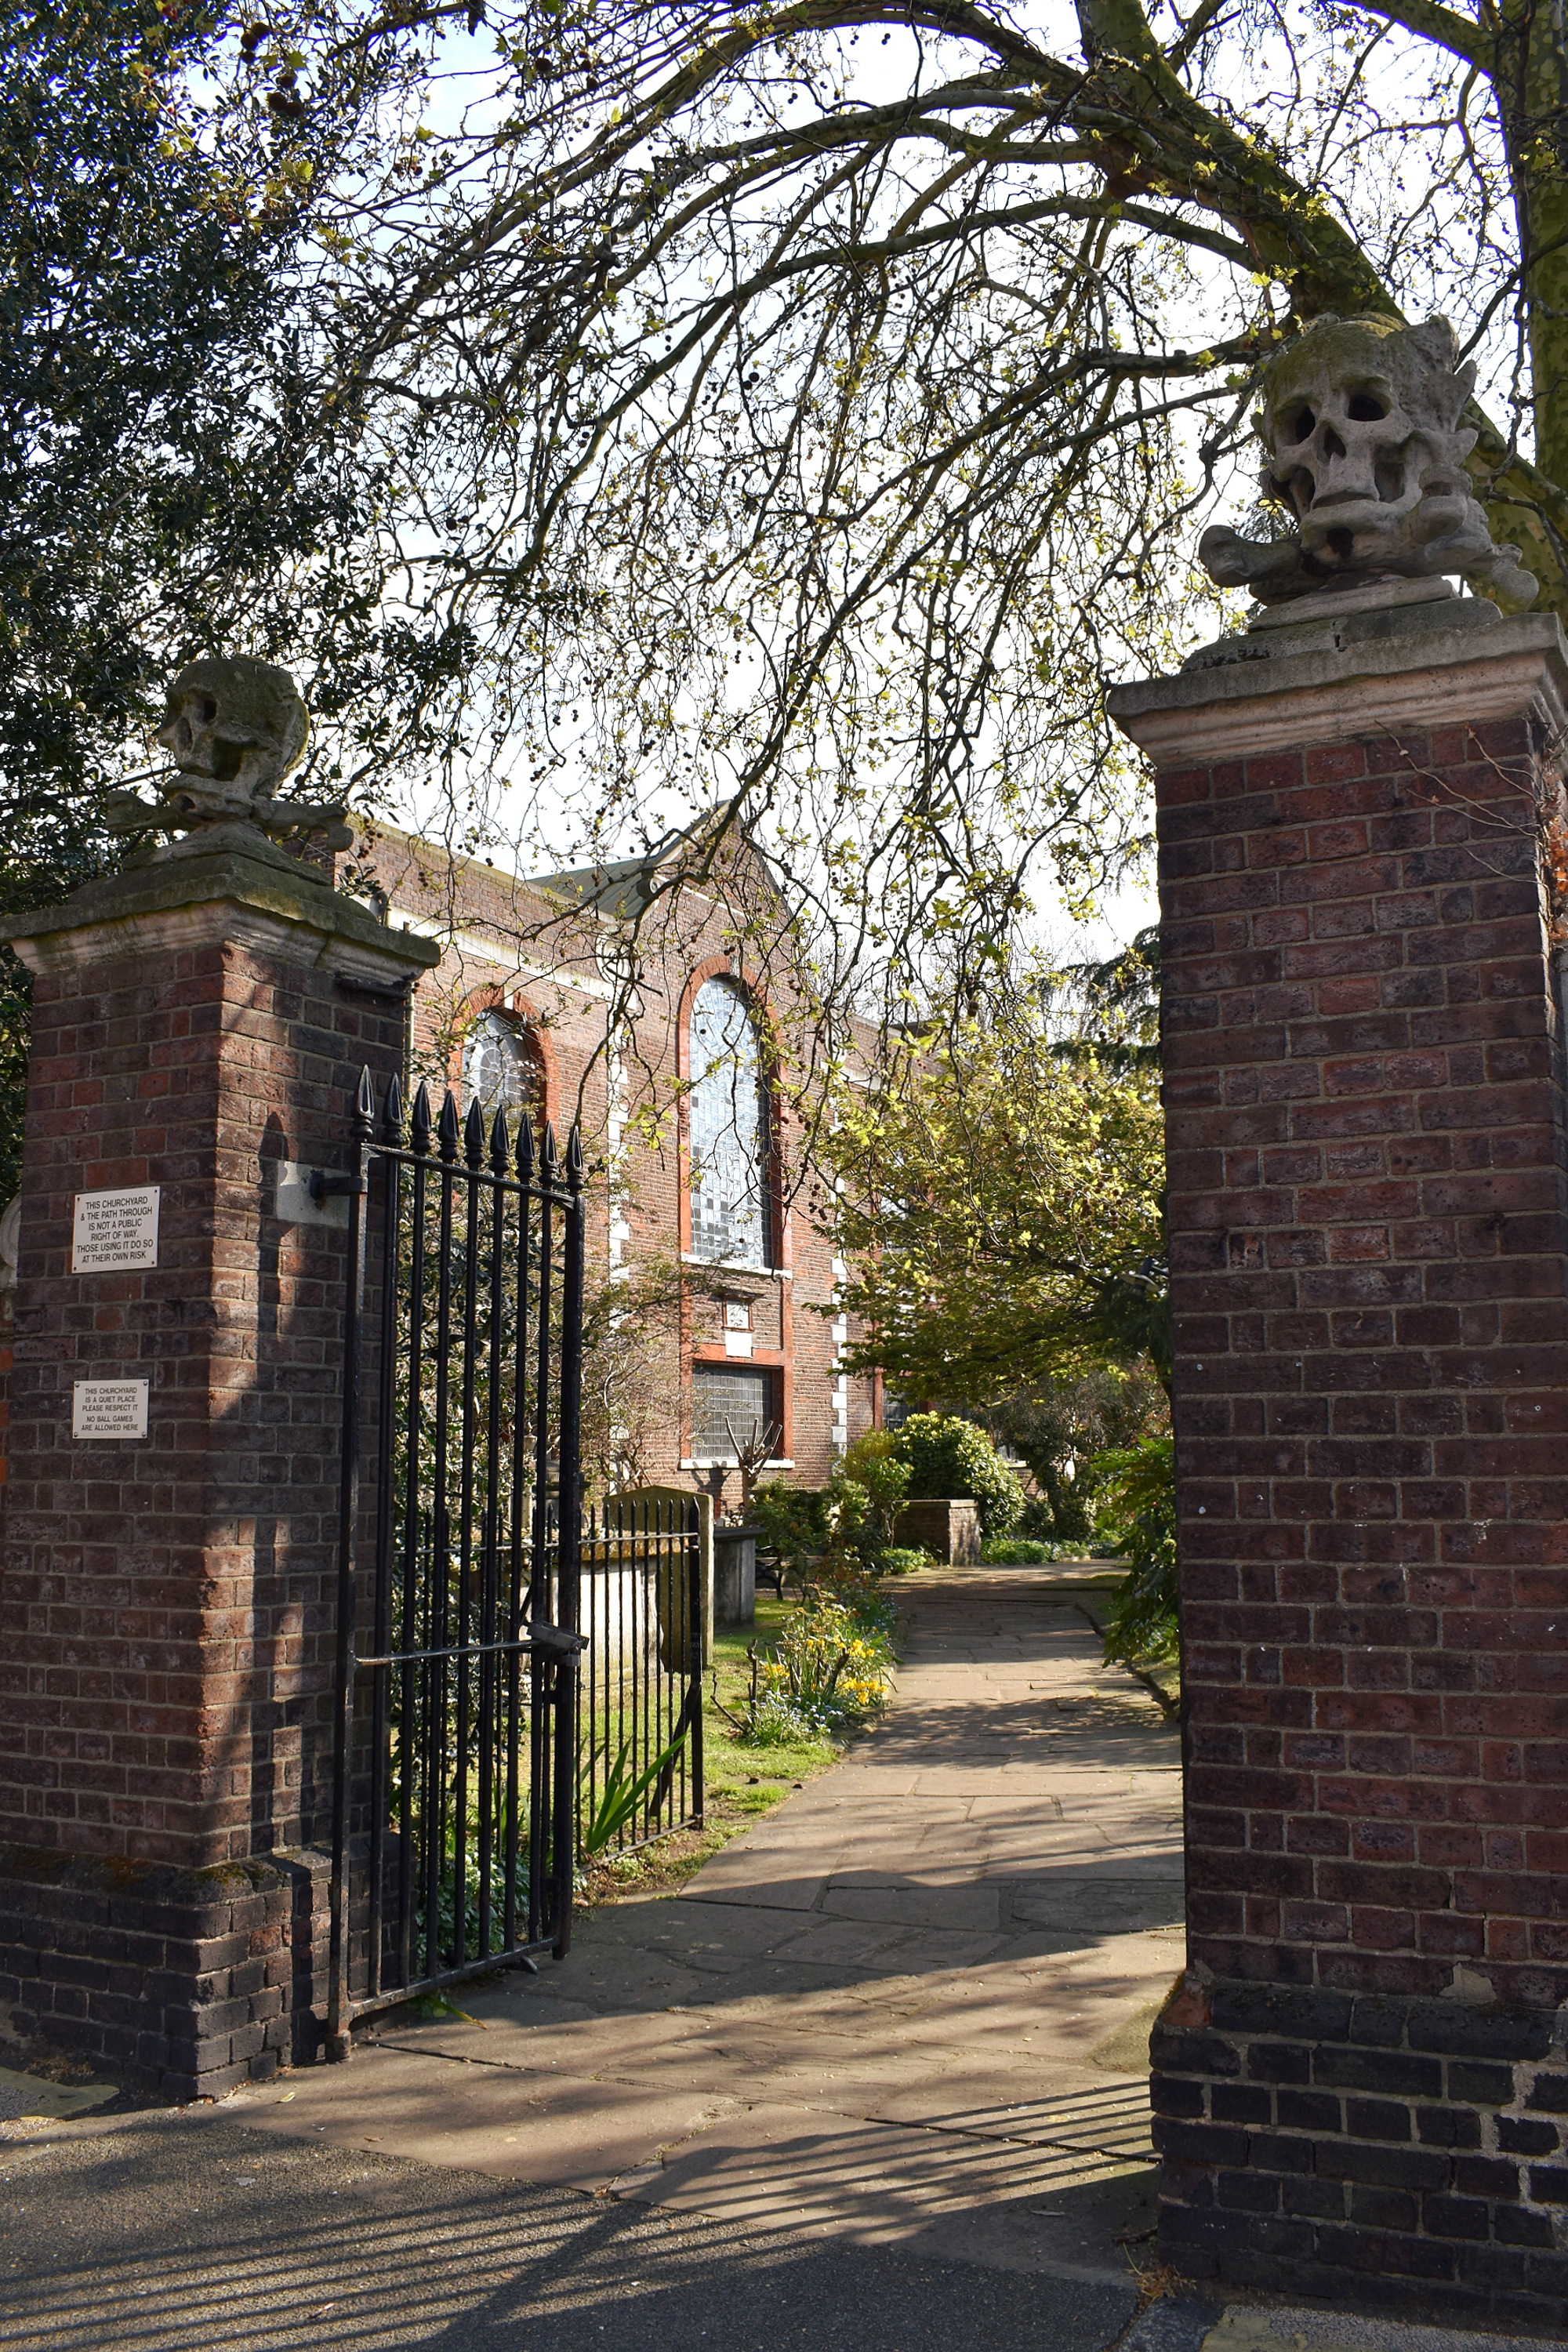 entrance gate to church with brick pillars and stone sculptures